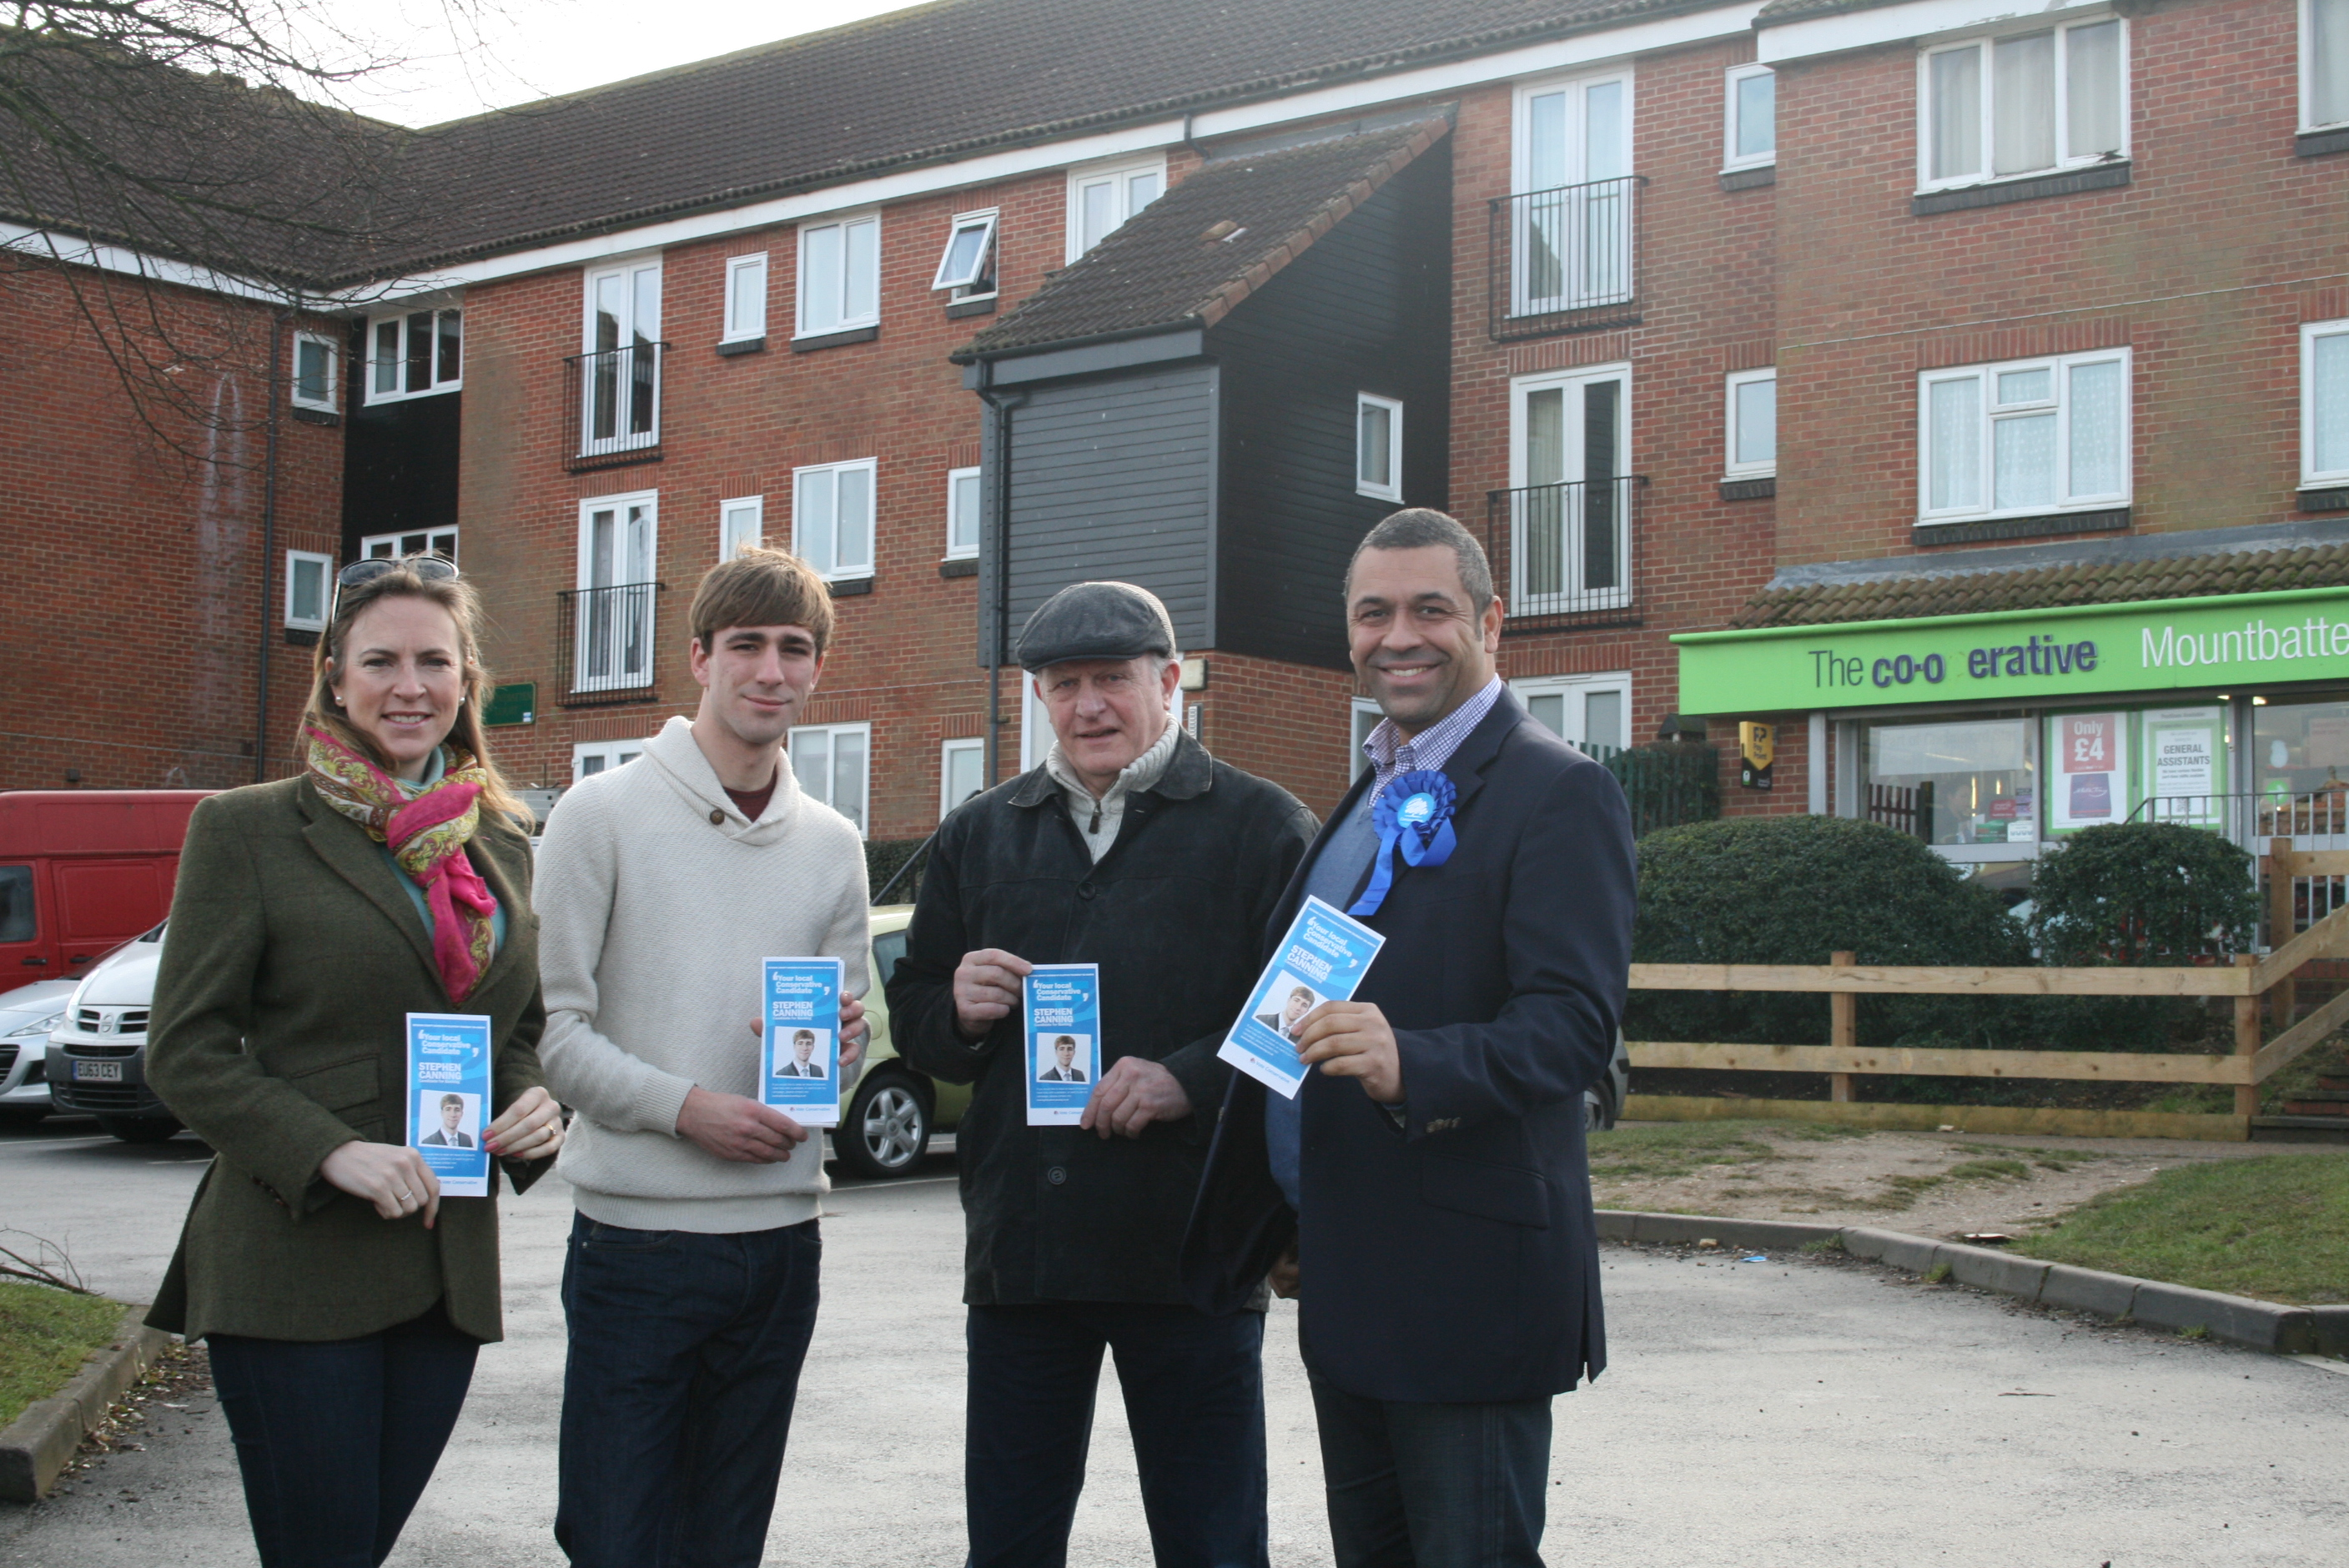 Campaigning in Bocking